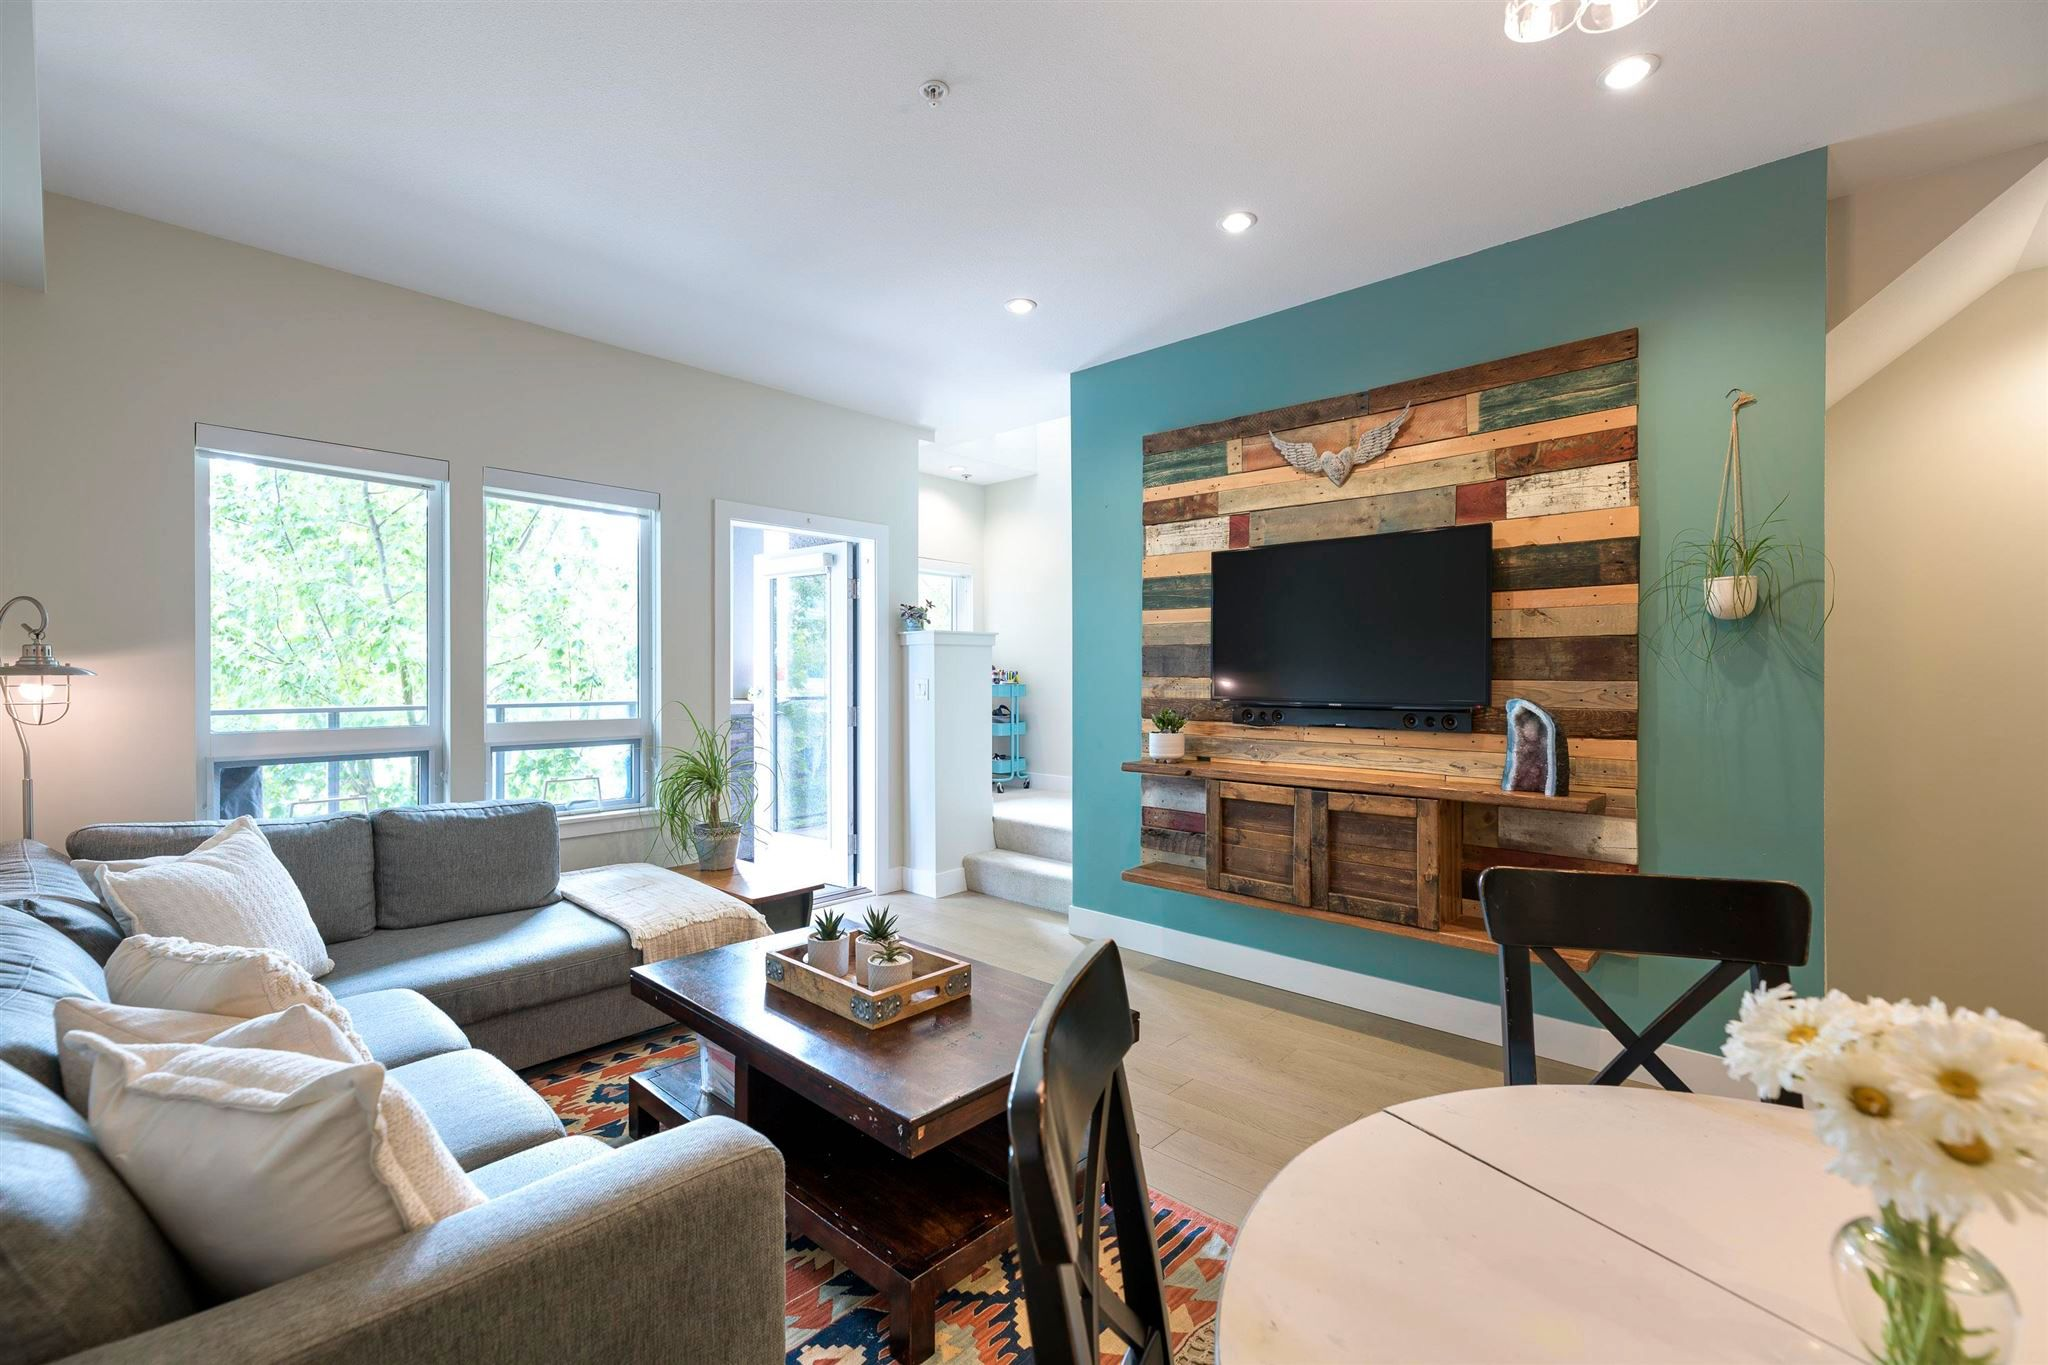 """Main Photo: 313 1768 55A Street in Delta: Cliff Drive Townhouse for sale in """"City Homes"""" (Tsawwassen)  : MLS®# R2600775"""